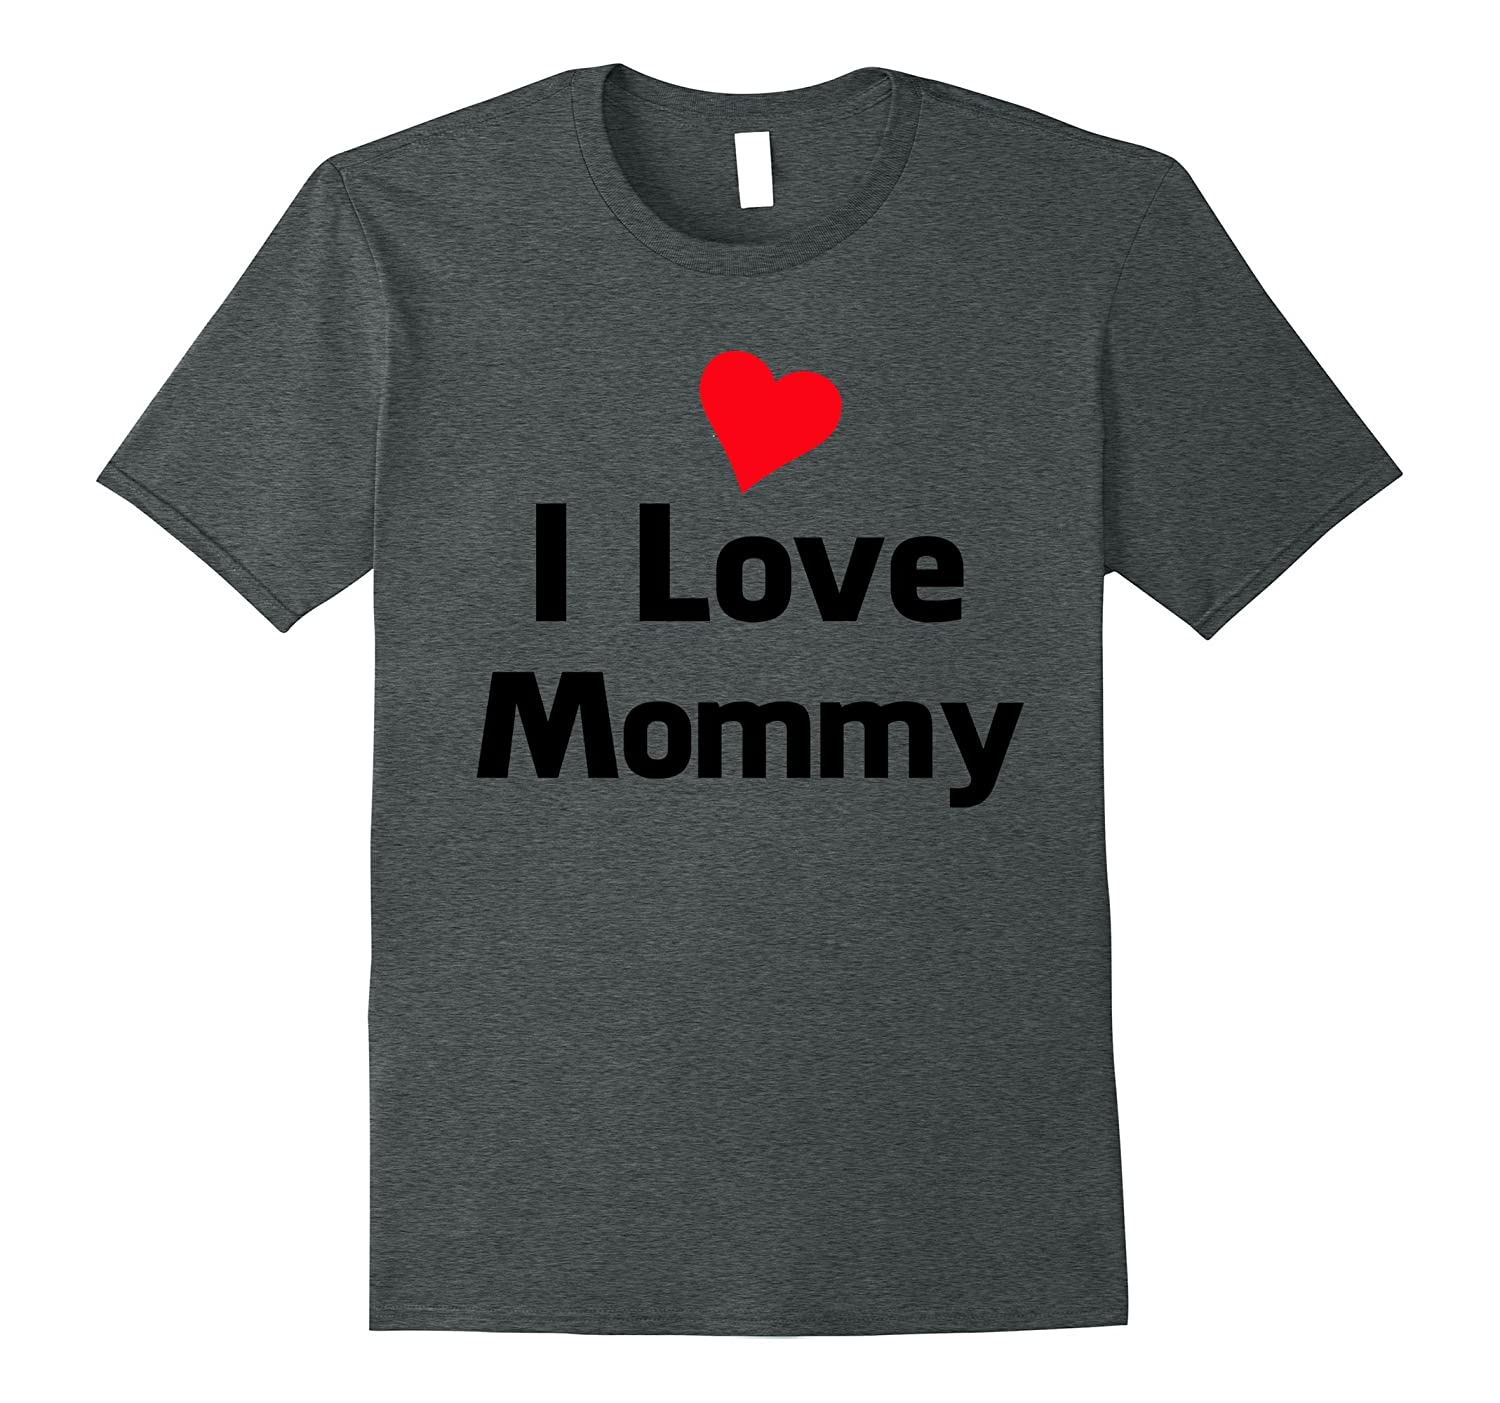 Adorable I LOVE MOMMY T-shirt cute gift idea for kids-Vaci